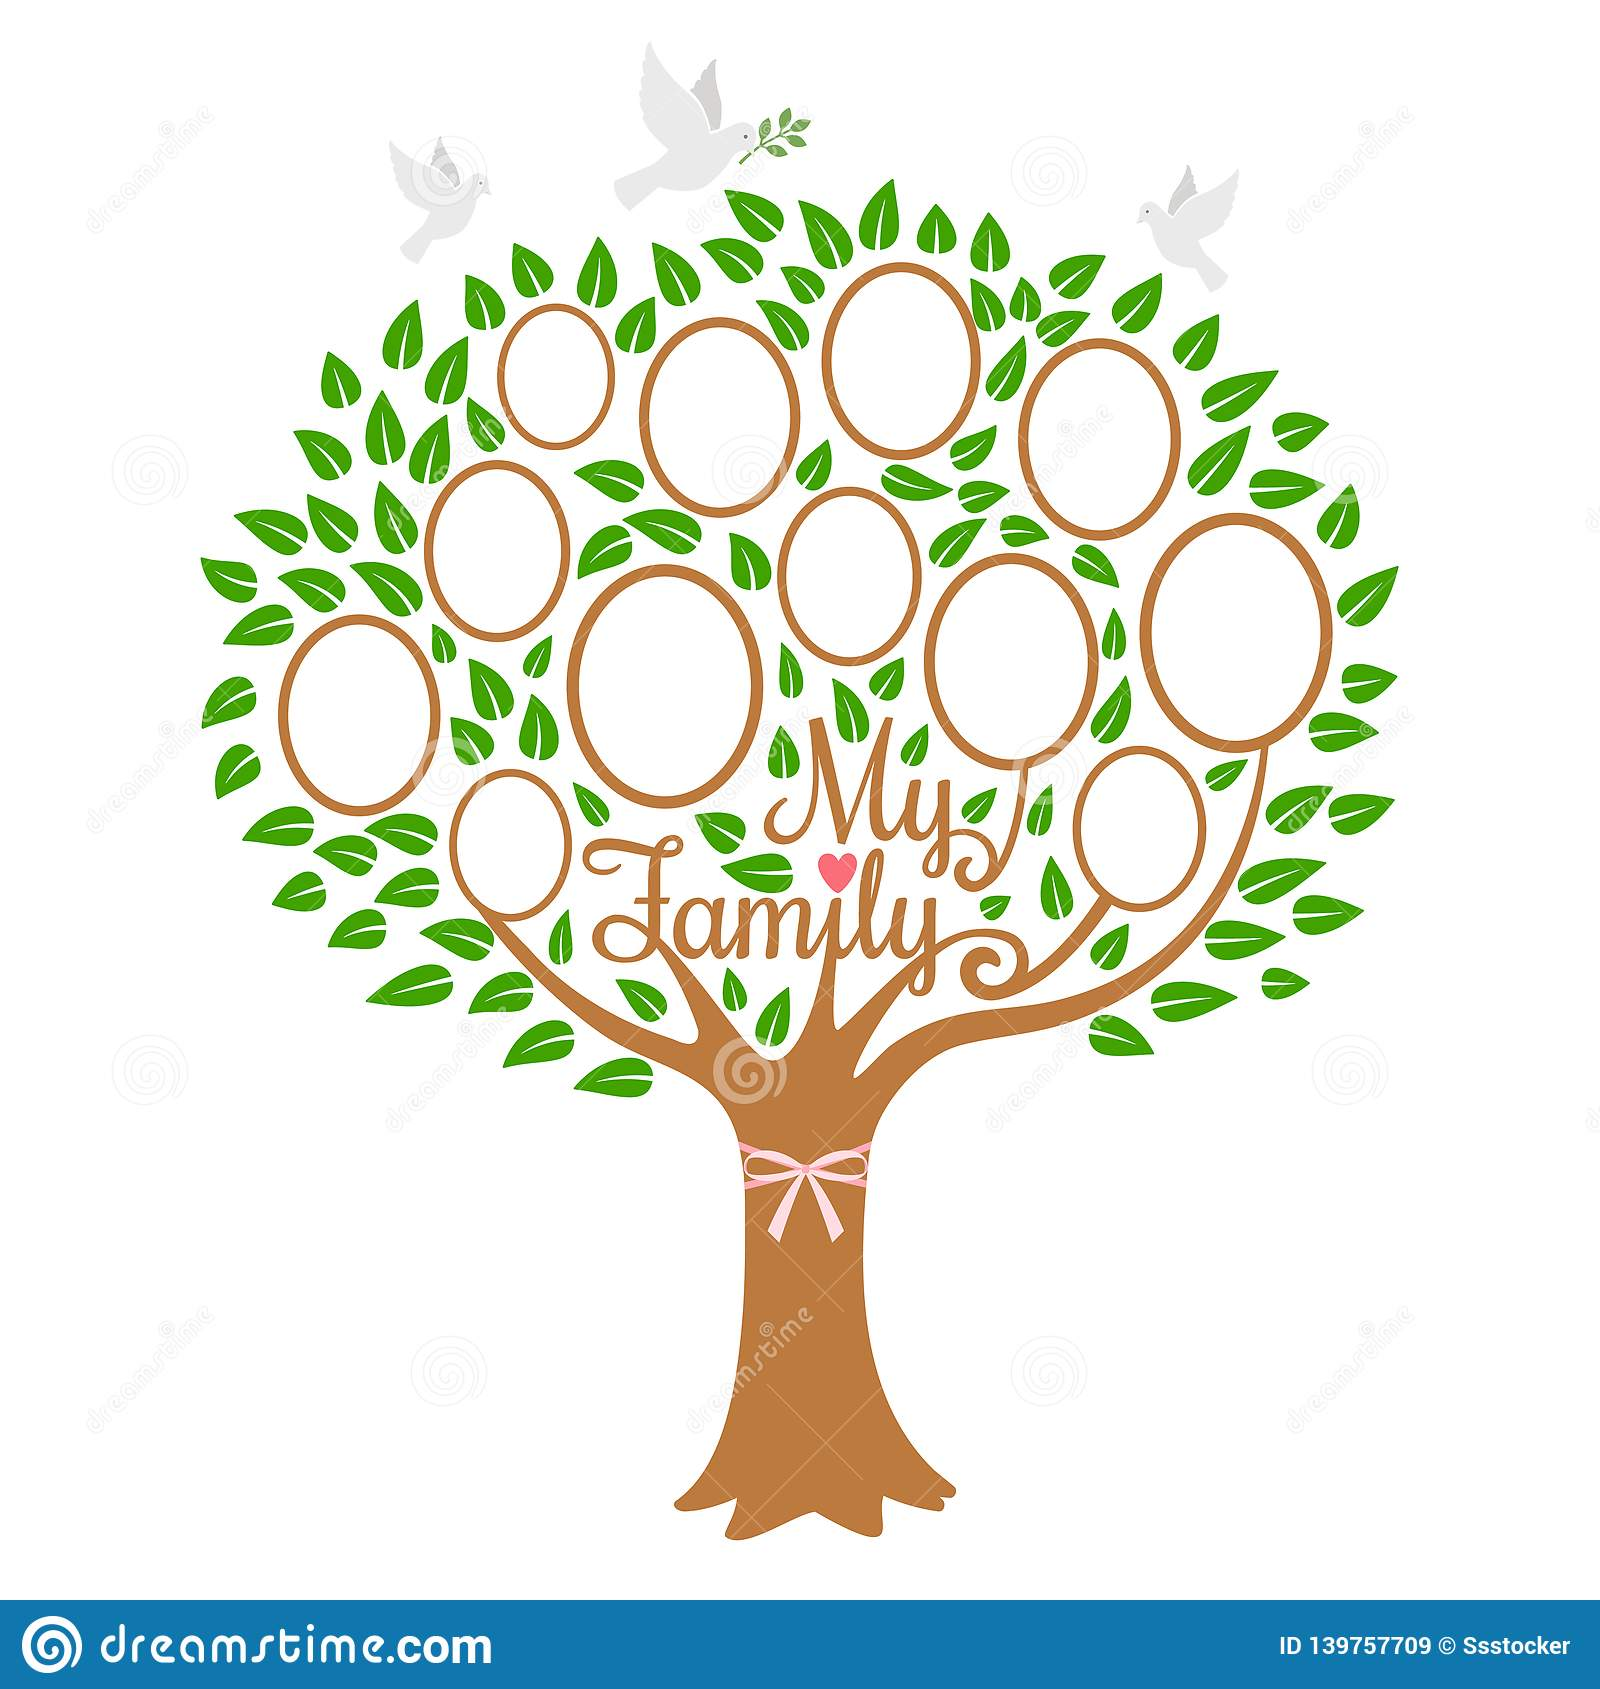 Family Tree Generation Genealogical Tree With Photo Place